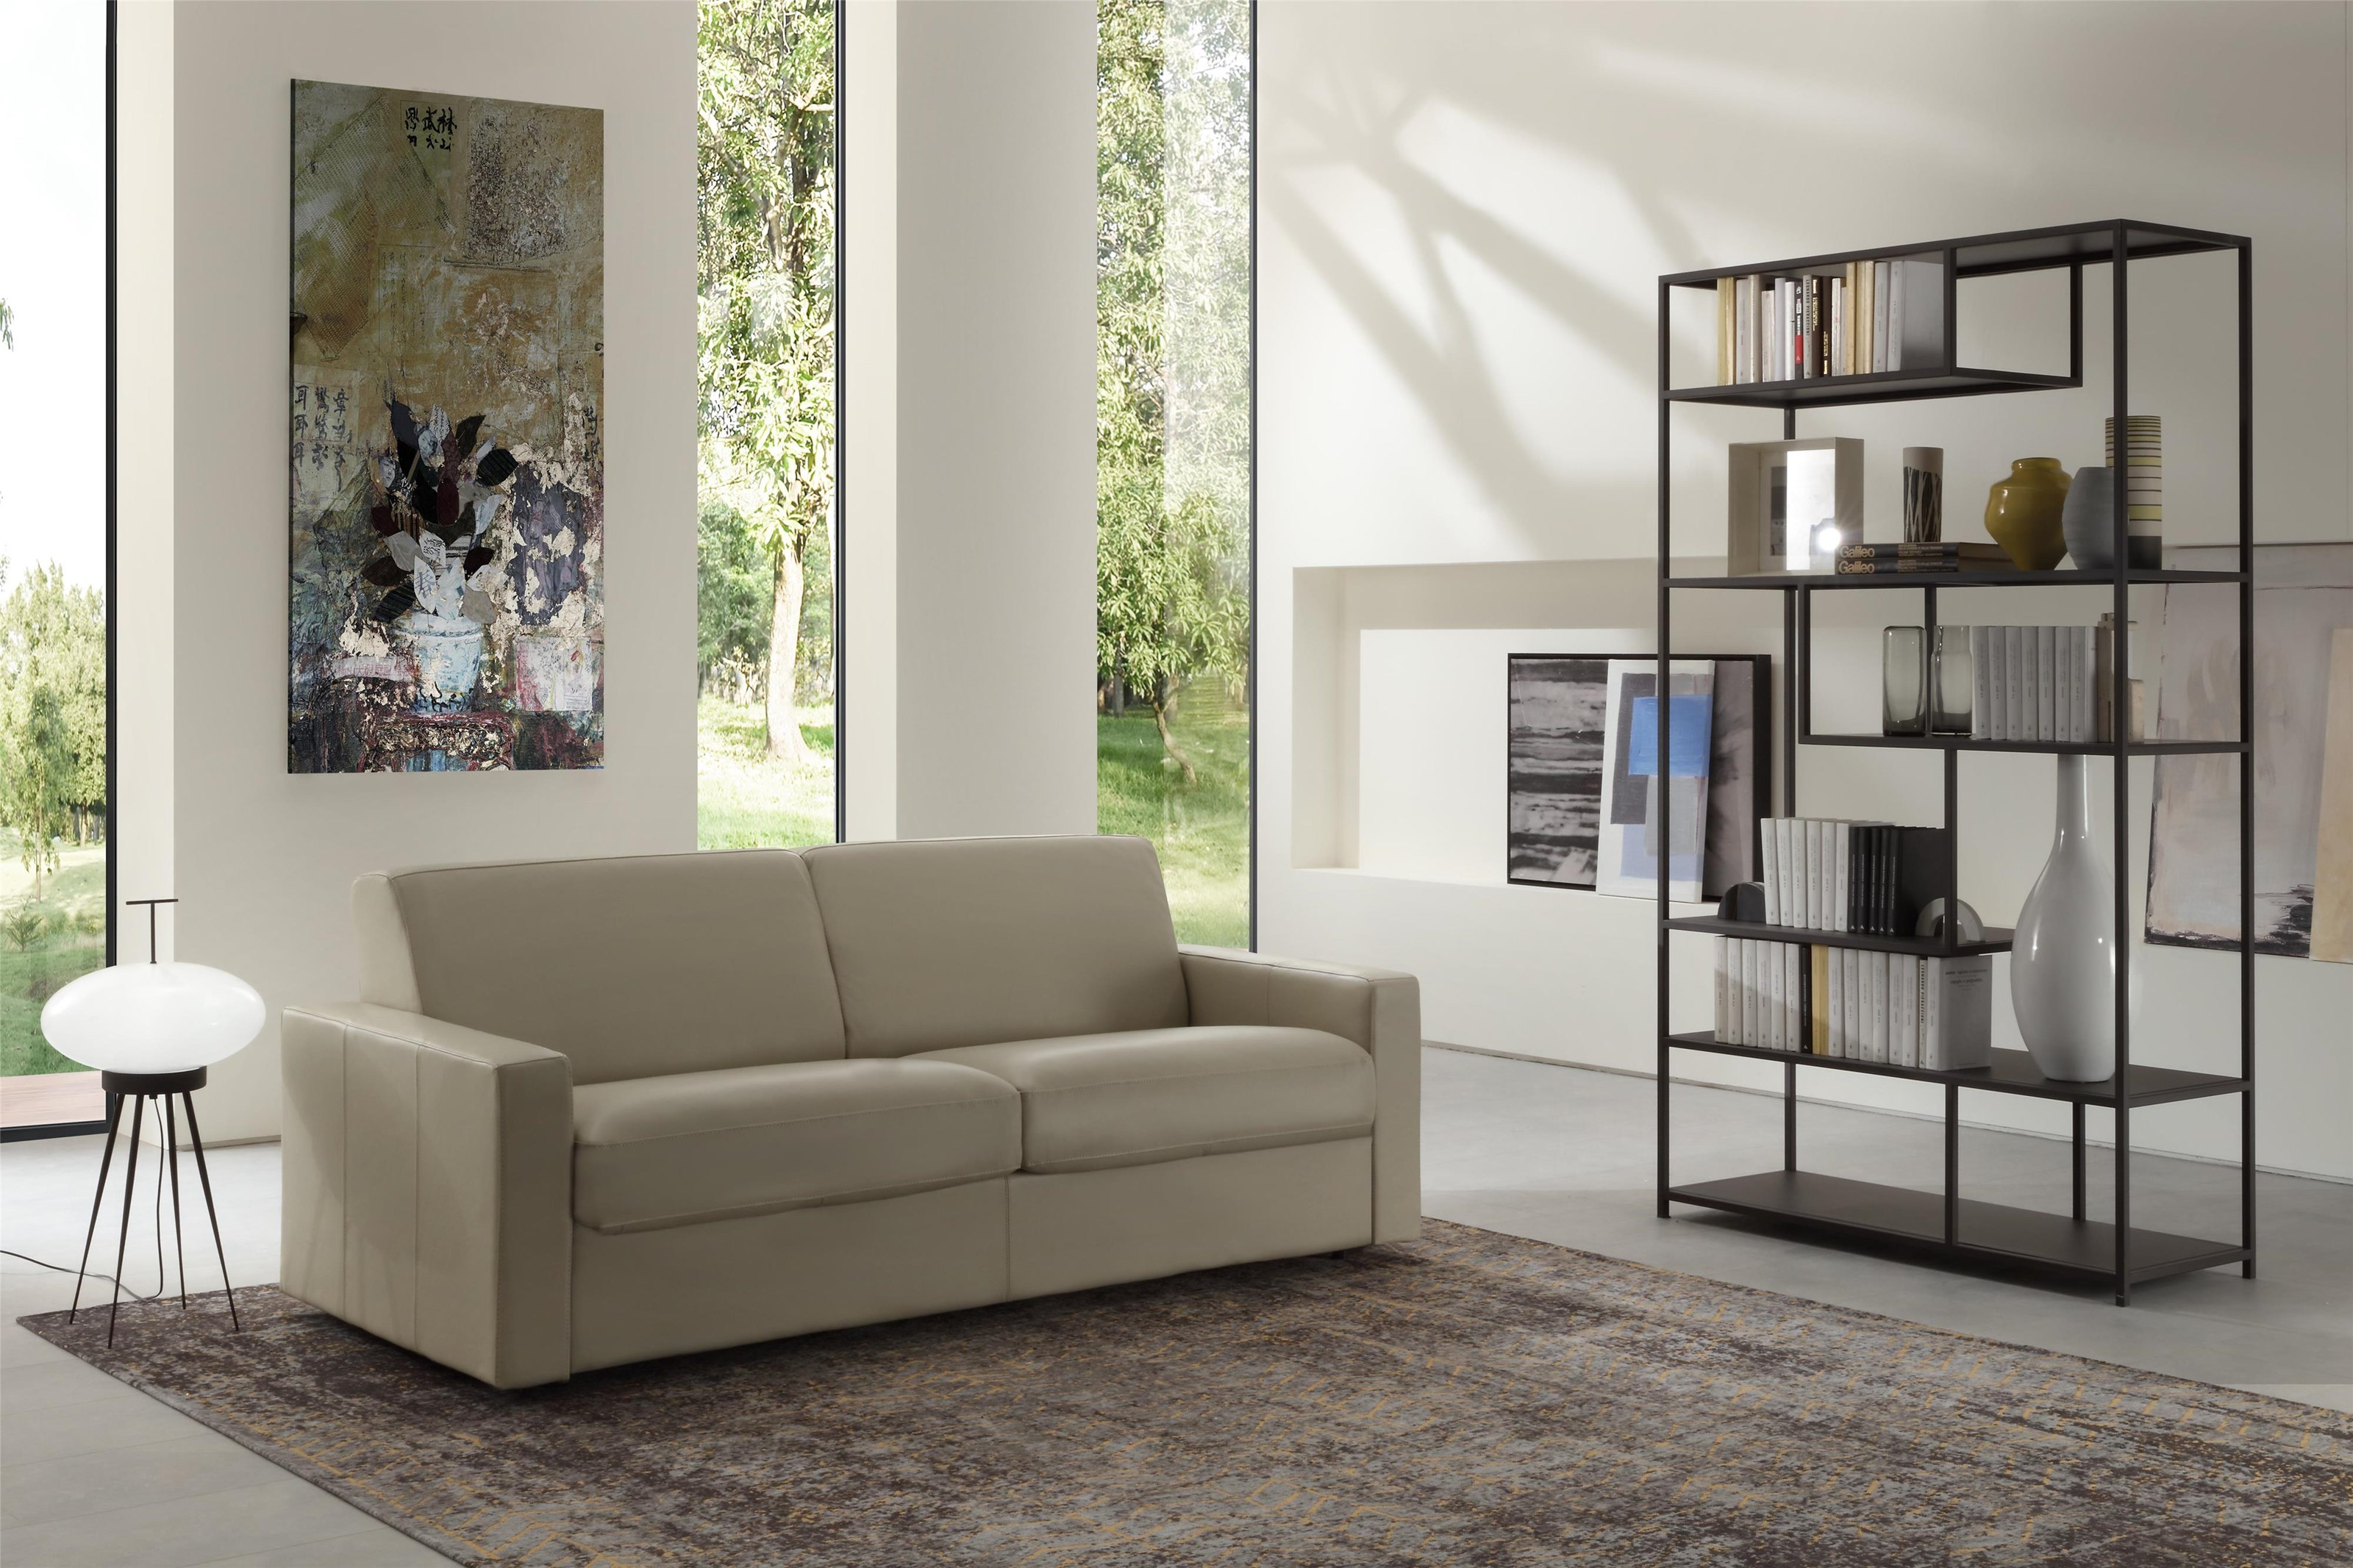 U80L Sleeper Leather Queen Sleeper by Chateau D'Ax at Baer's Furniture